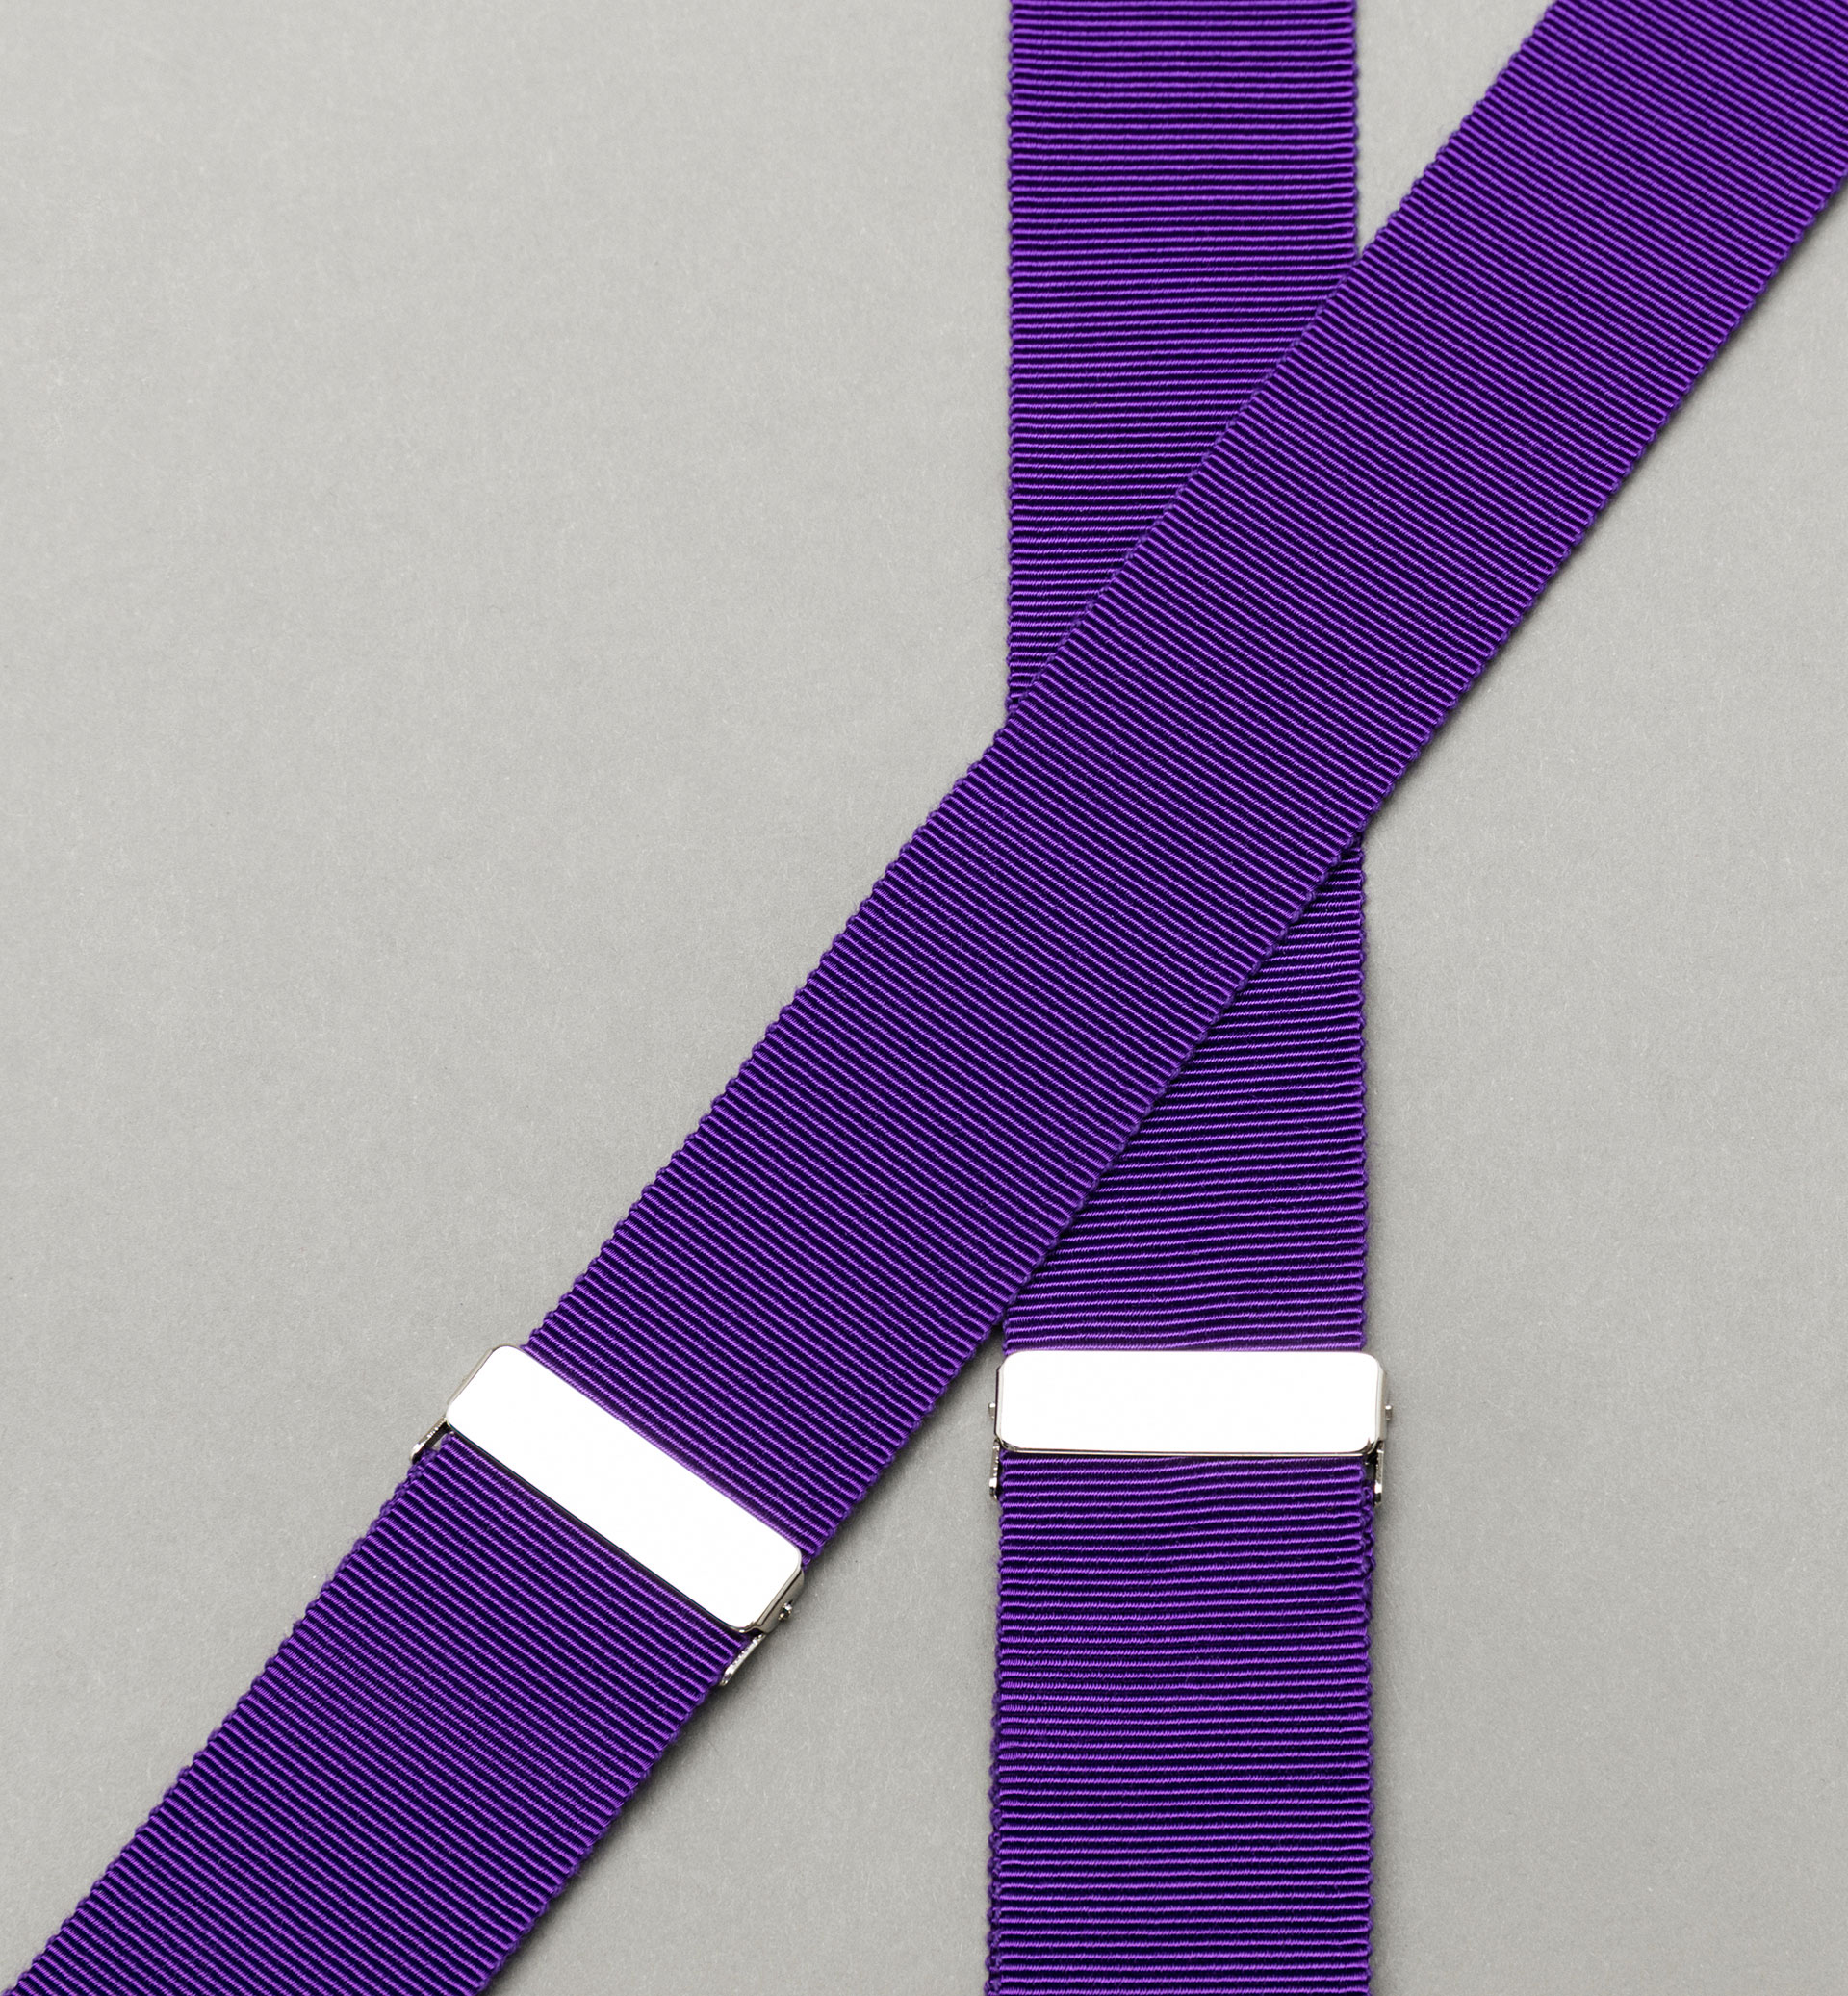 PERSONAL TAILORING STRETCH BRACES